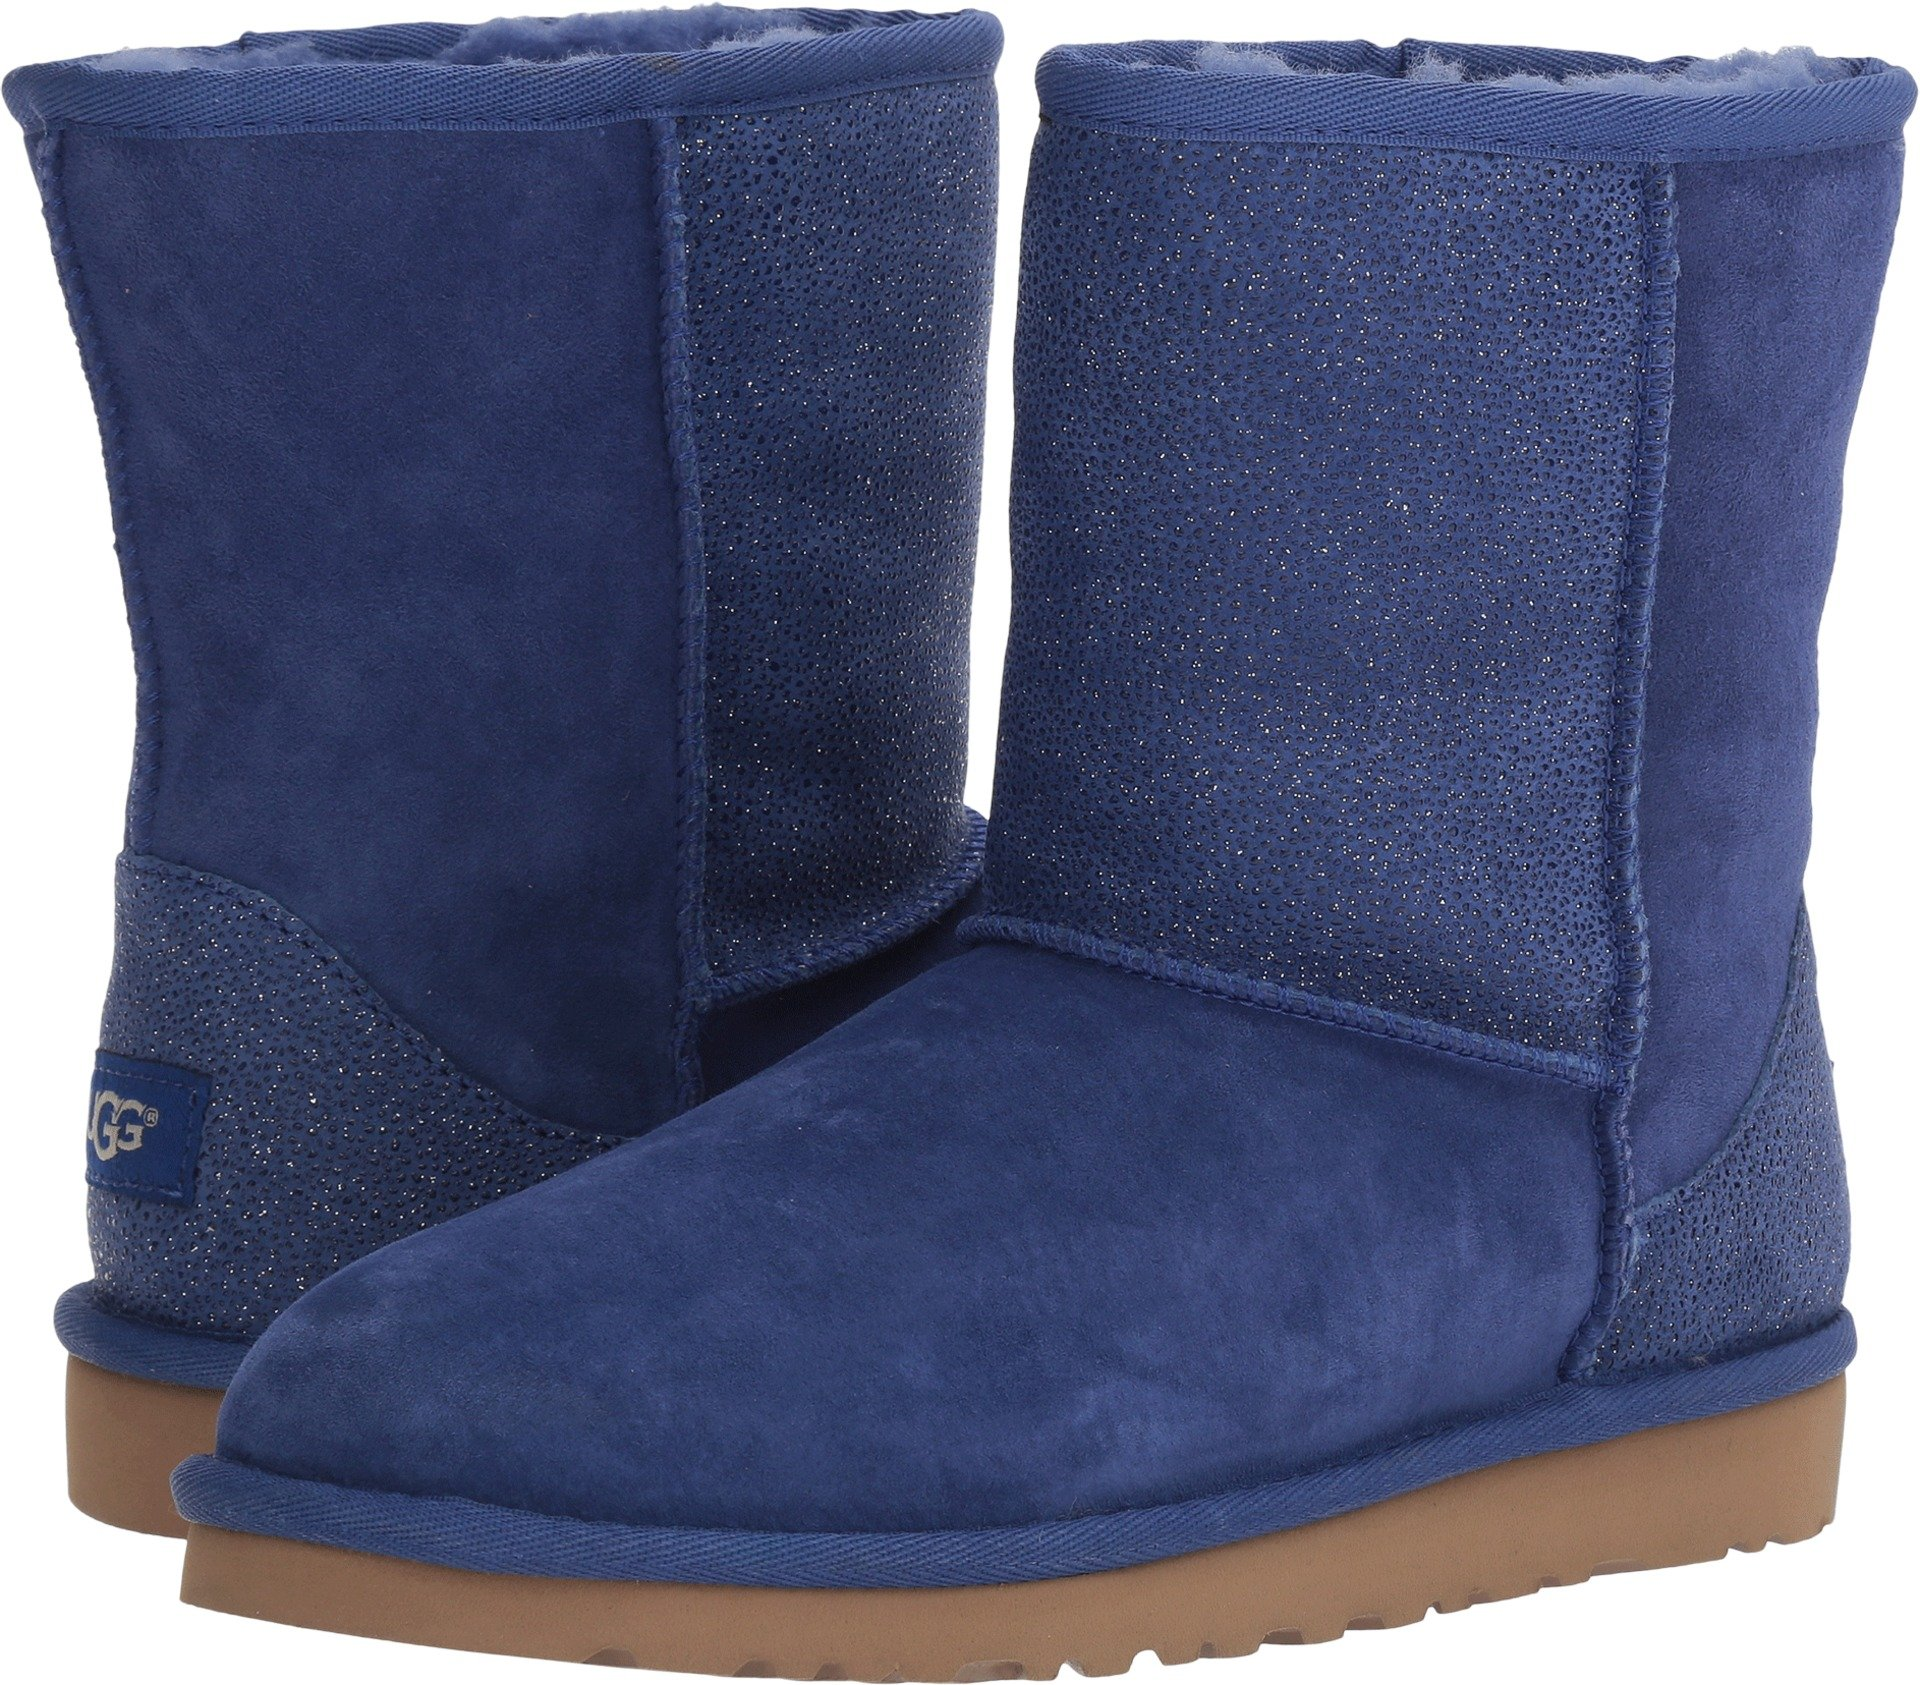 UGG Kids Classic Short Serein Boot Night Sky Size 5 M US Big Kid